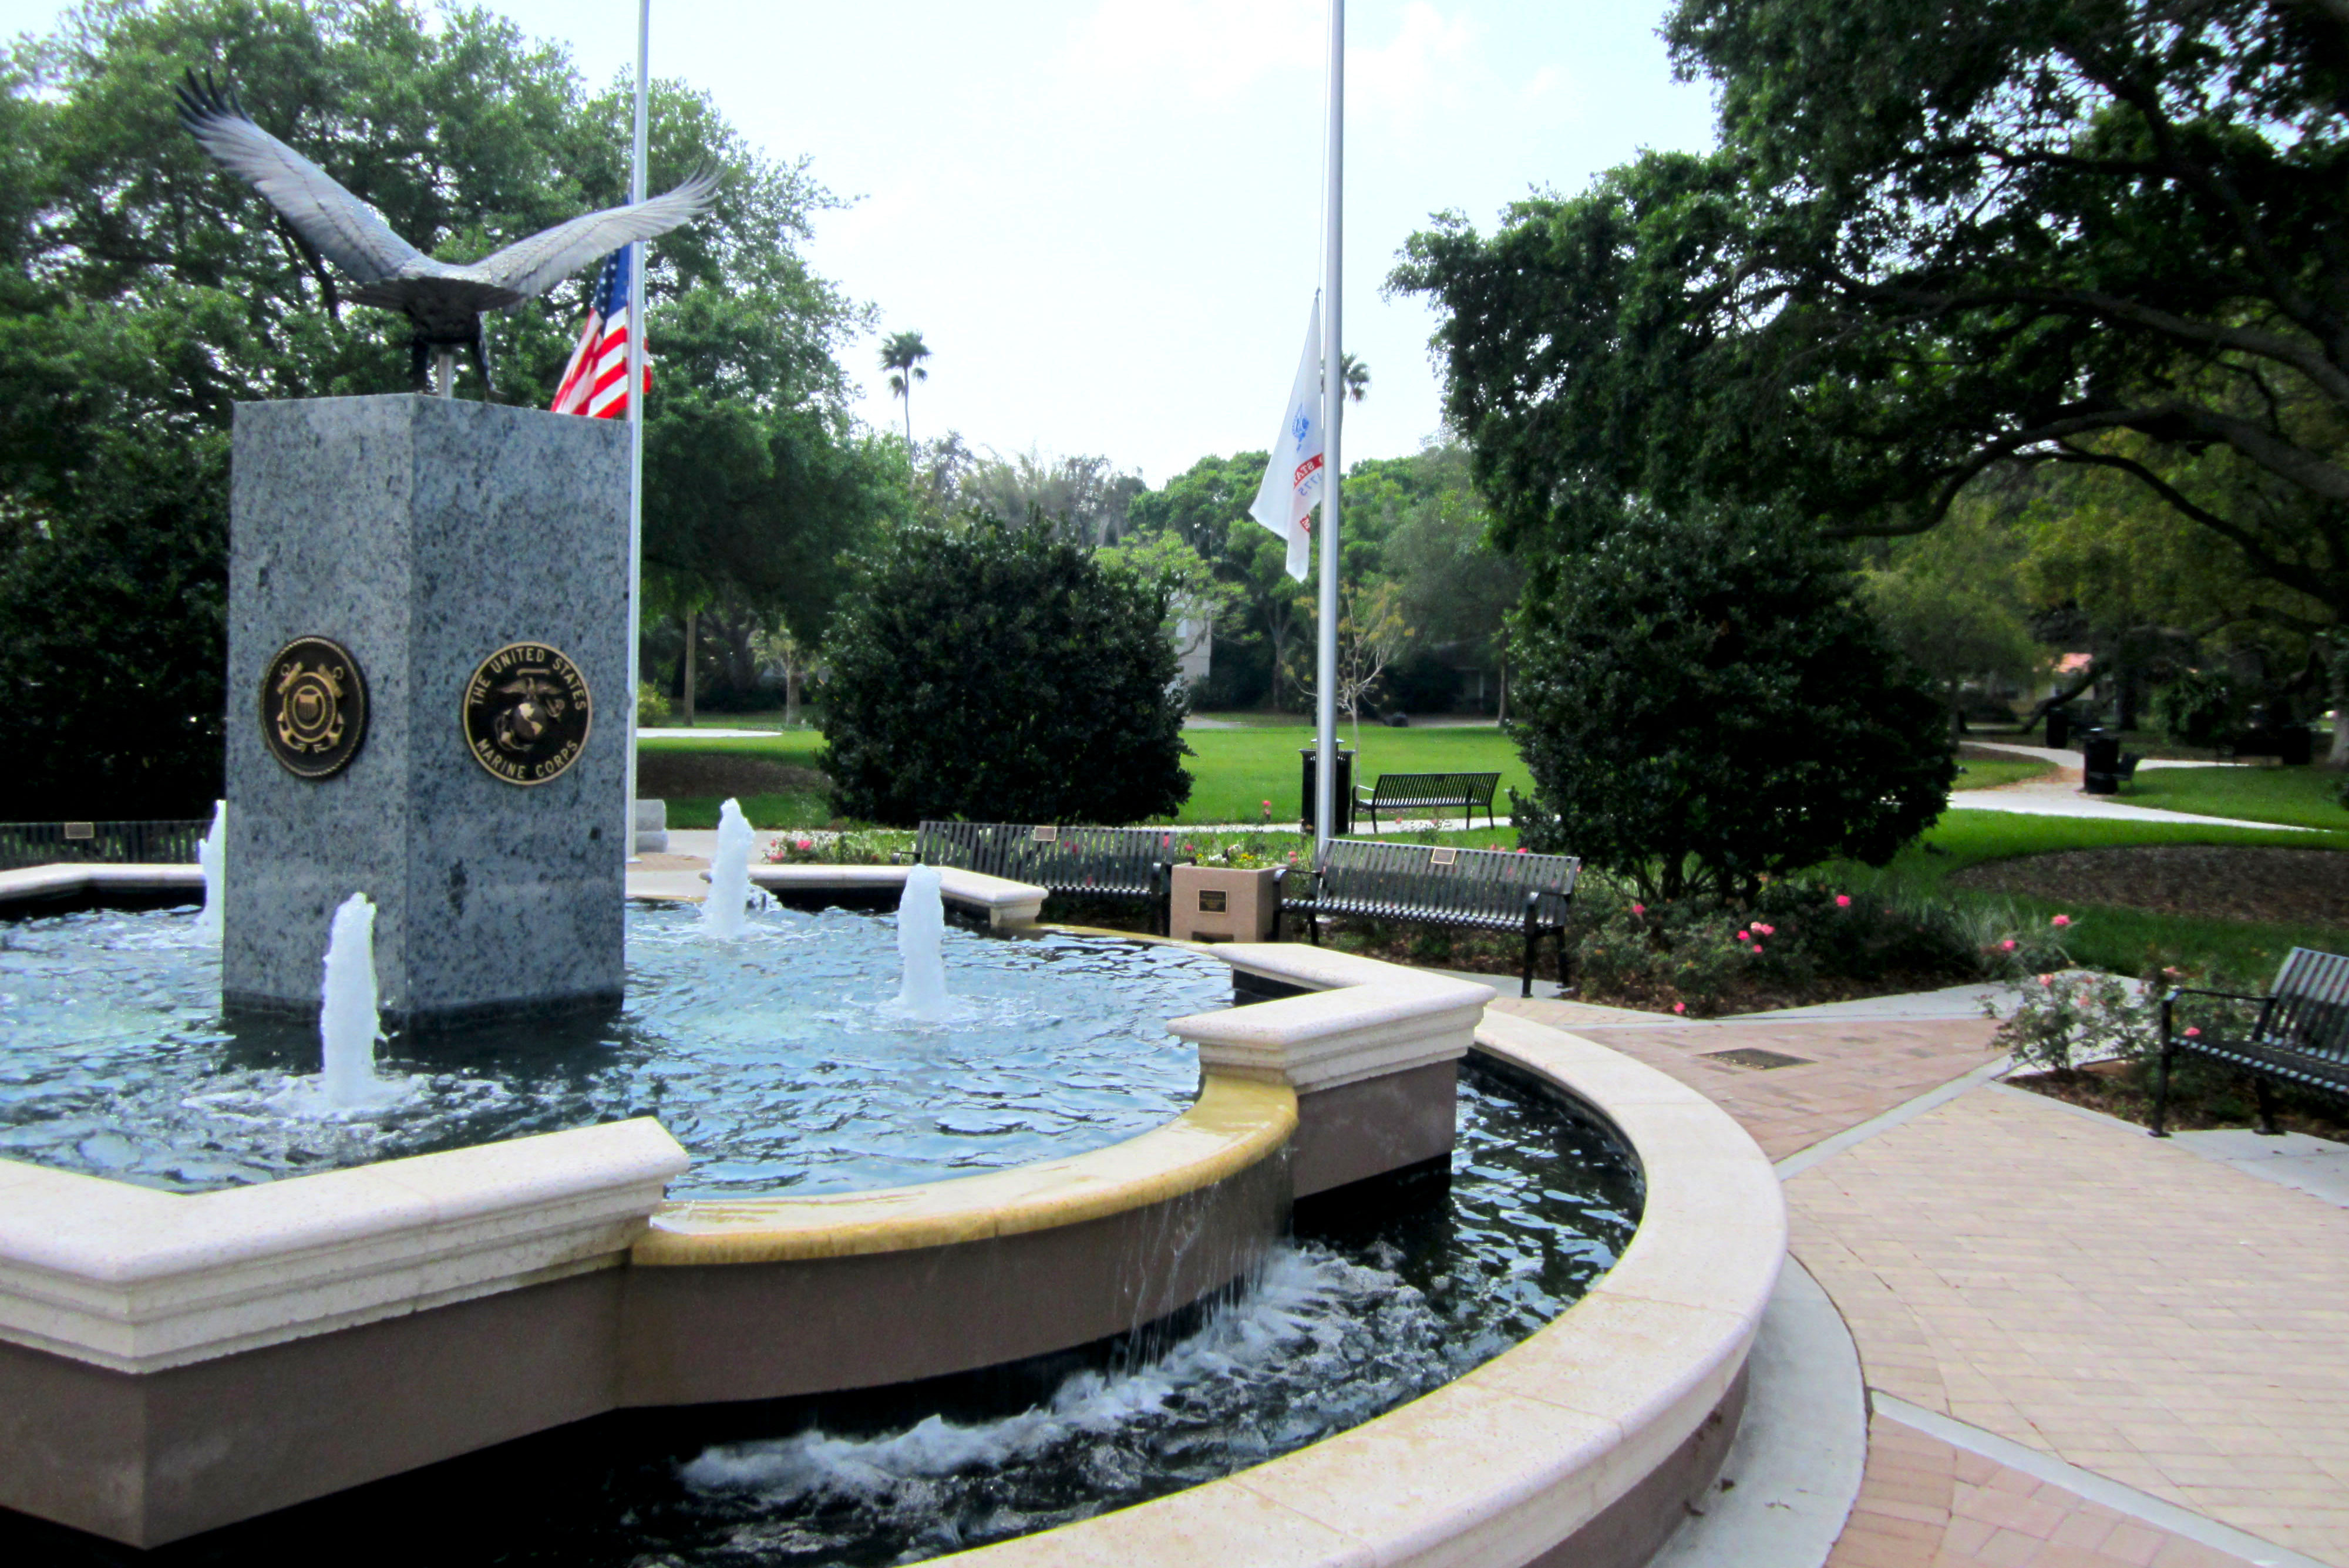 A view from the back of the fountain in Hunter Memorial Park during daytime